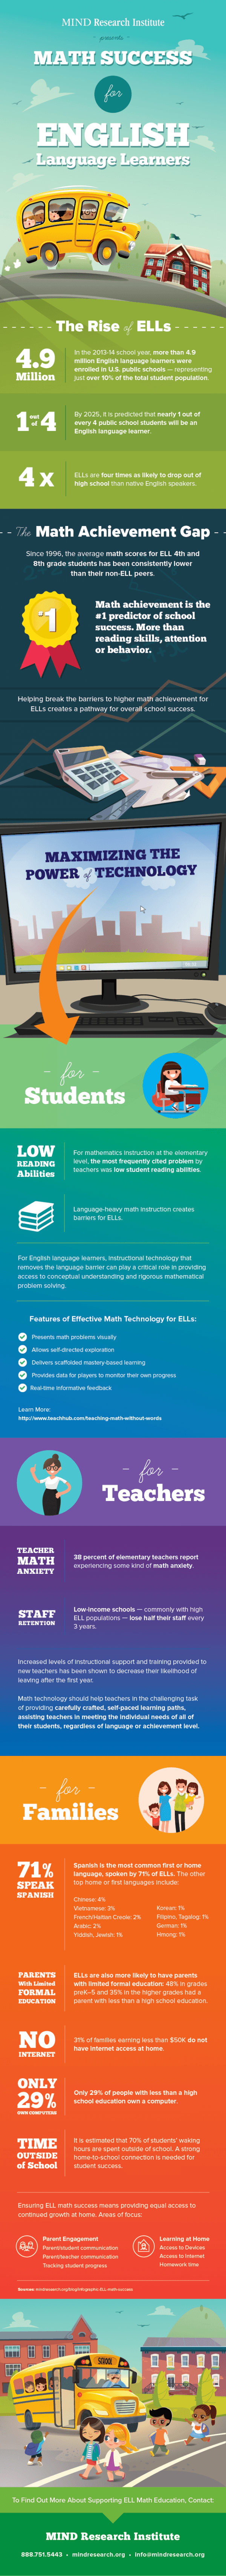 Math Success for English Language Learners Infographic